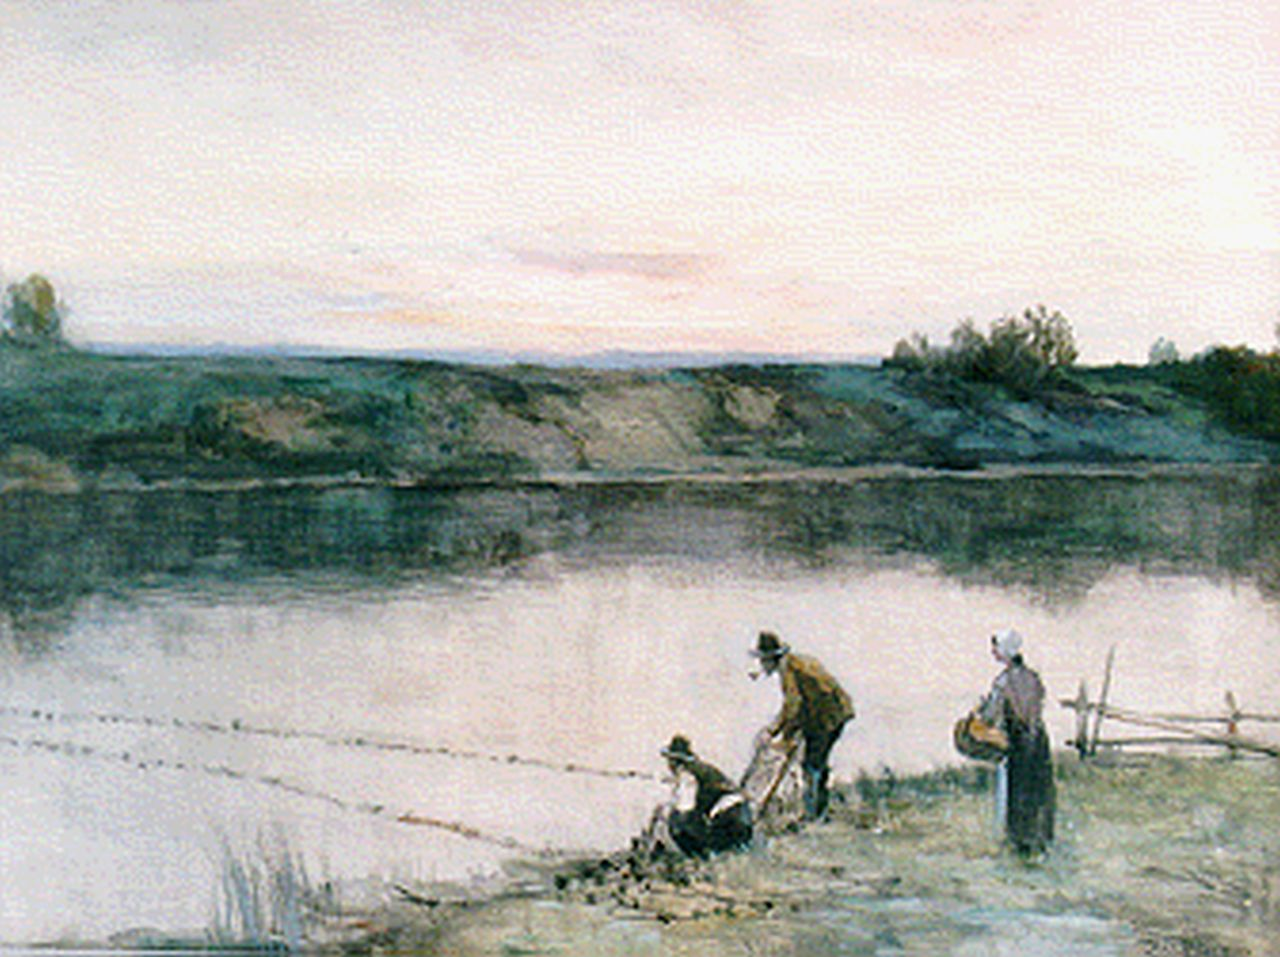 Höppe F.B.  | Ferdinand Bernhard Höppe, Anglers on the riverbank, watercolour on paper 46.5 x 64.5 cm, signed l.r.